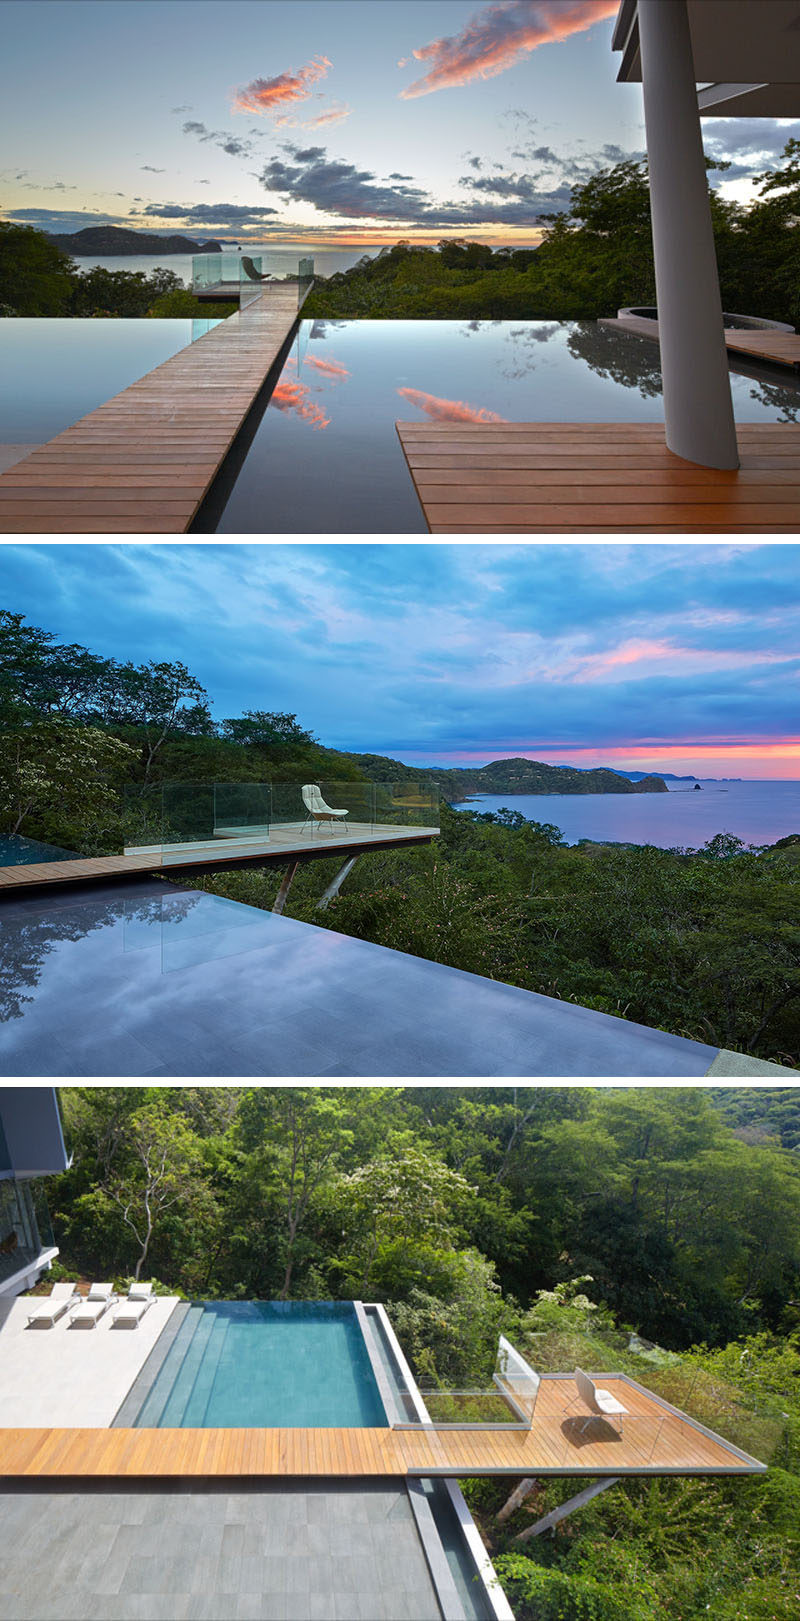 This modern house, designed to enjoy the views, has an infinity edge pool and a walkway that leads out to a deck that extends away from the house.